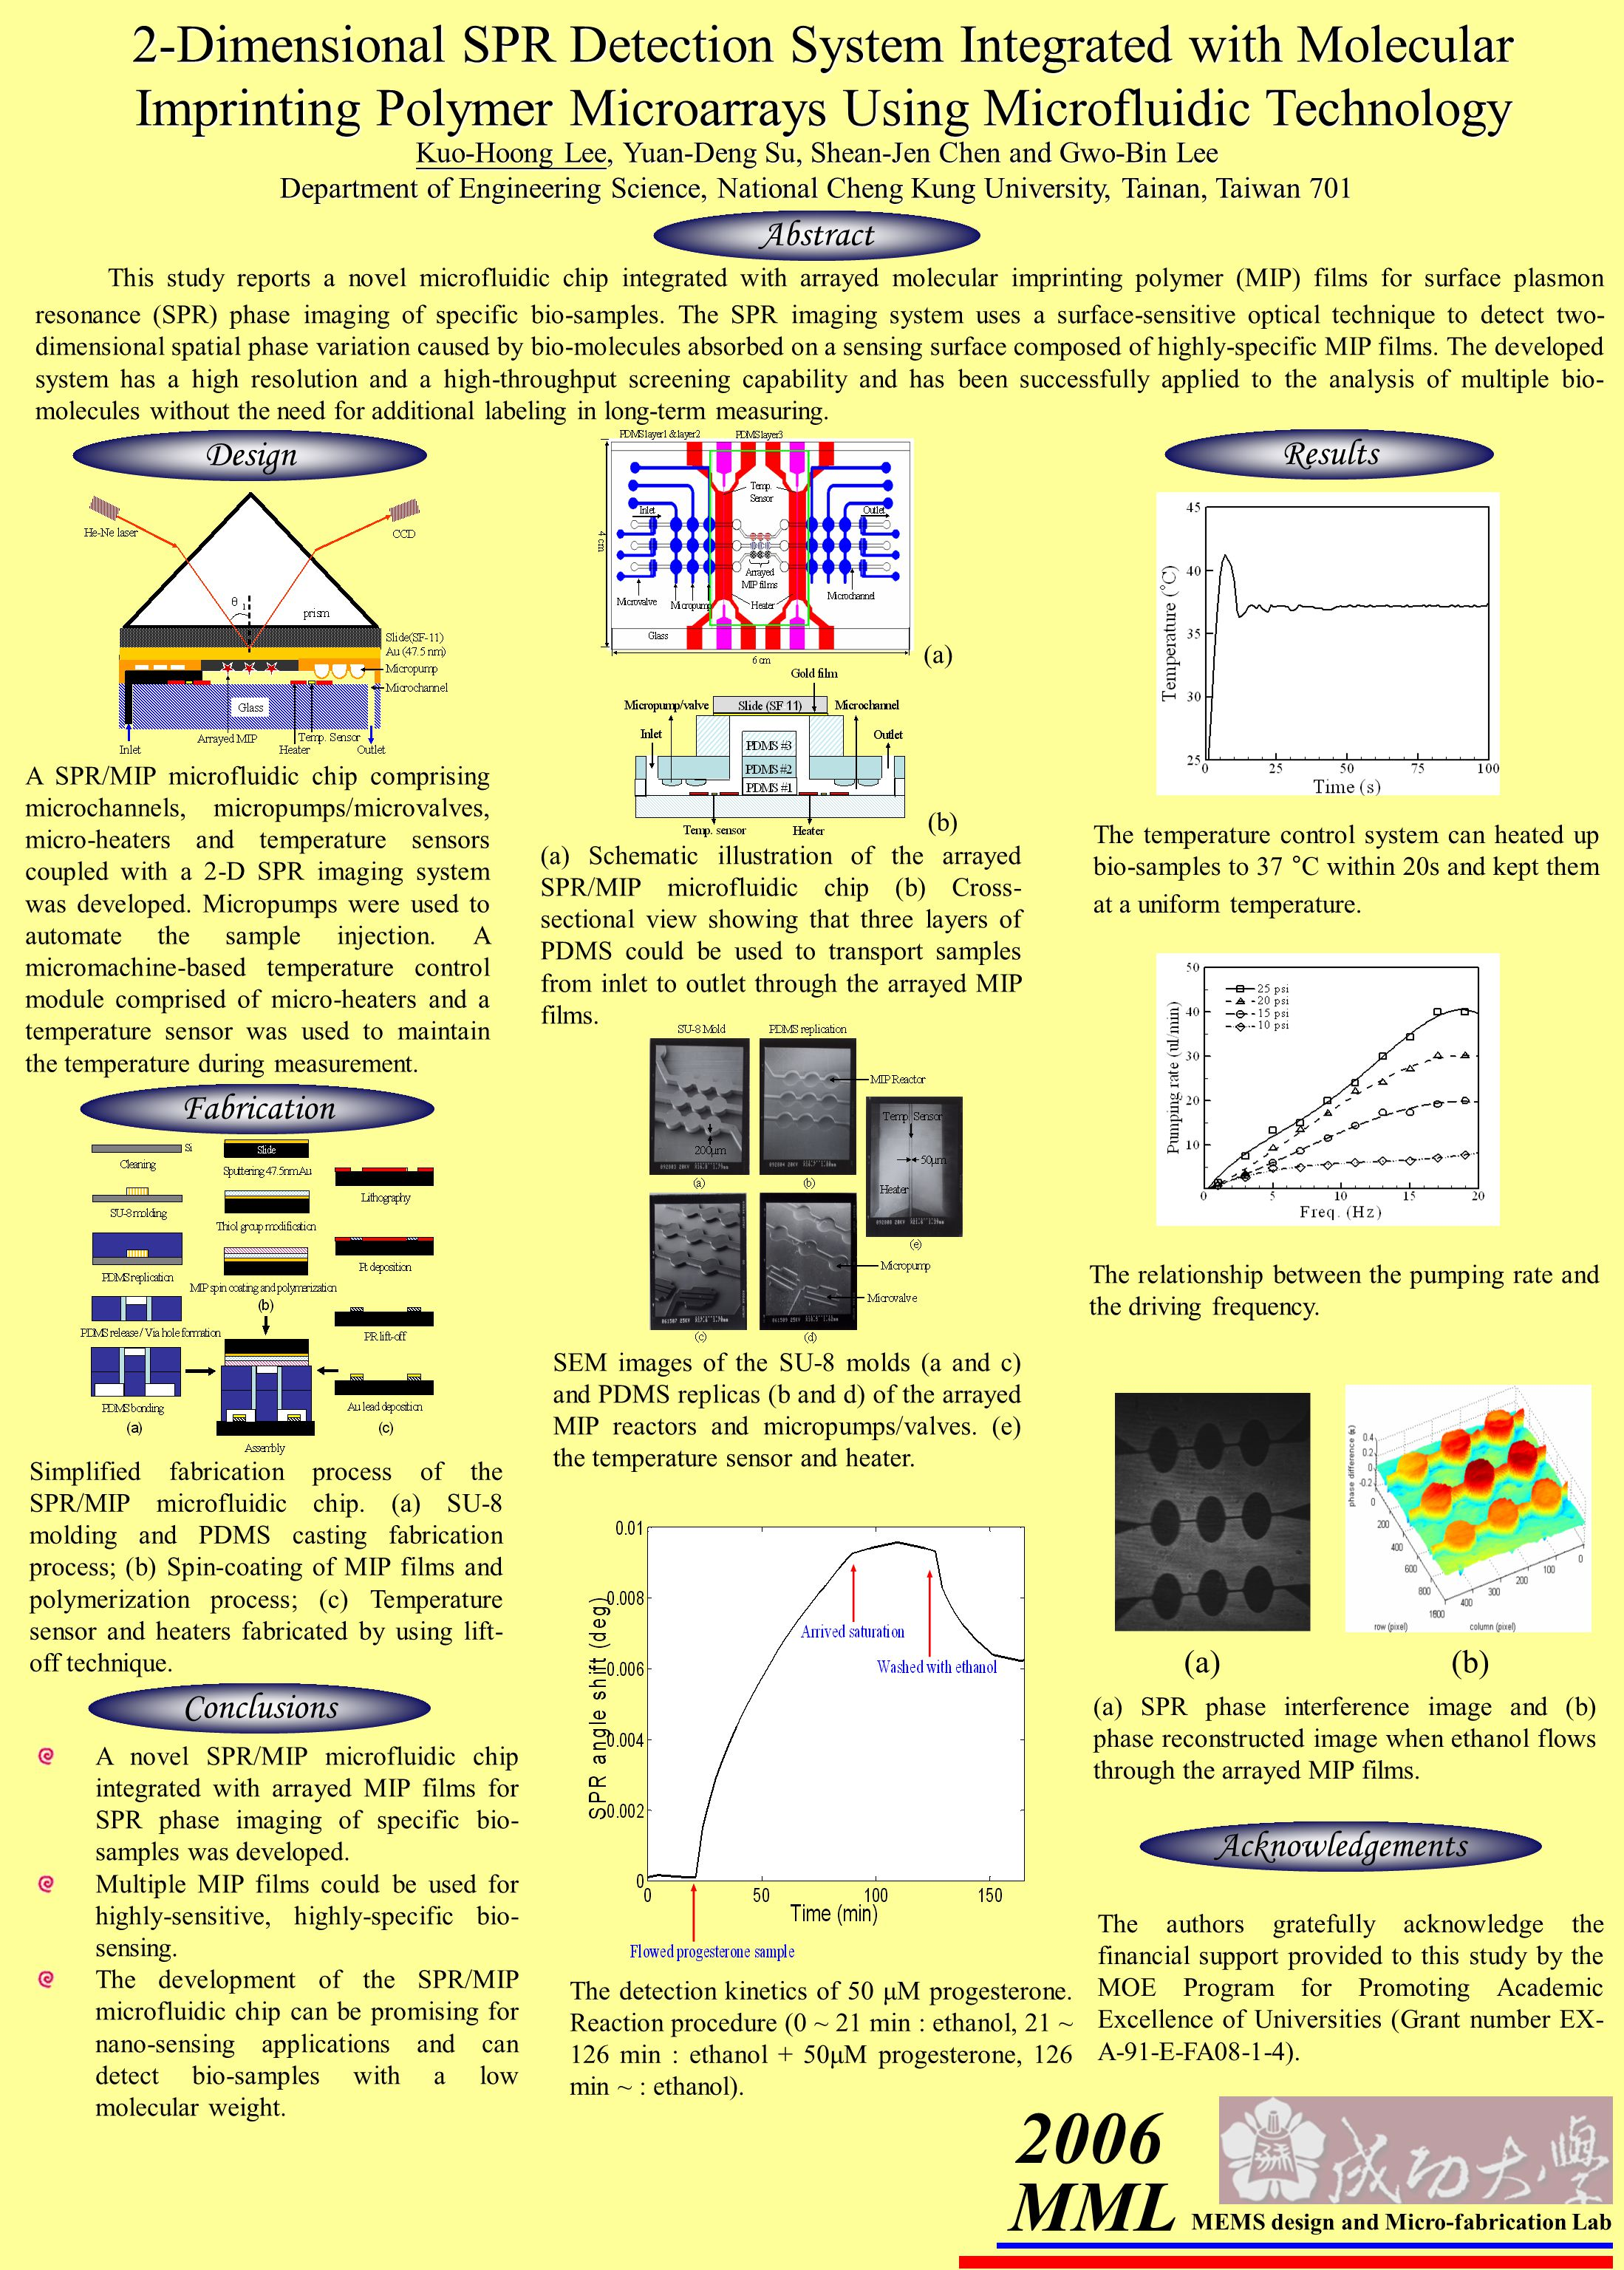 MEMS design and Micro-fabrication Lab MML 2-Dimensional SPR Detection System Integrated with Molecular Imprinting Polymer Microarrays Using Microfluidic Technology Kuo-Hoong Lee, Yuan-Deng Su, Shean-Jen Chen and Gwo-Bin Lee Department of Engineering Science, National Cheng Kung University, Tainan, Taiwan 701 This study reports a novel microfluidic chip integrated with arrayed molecular imprinting polymer (MIP) films for surface plasmon resonance (SPR) phase imaging of specific bio-samples.